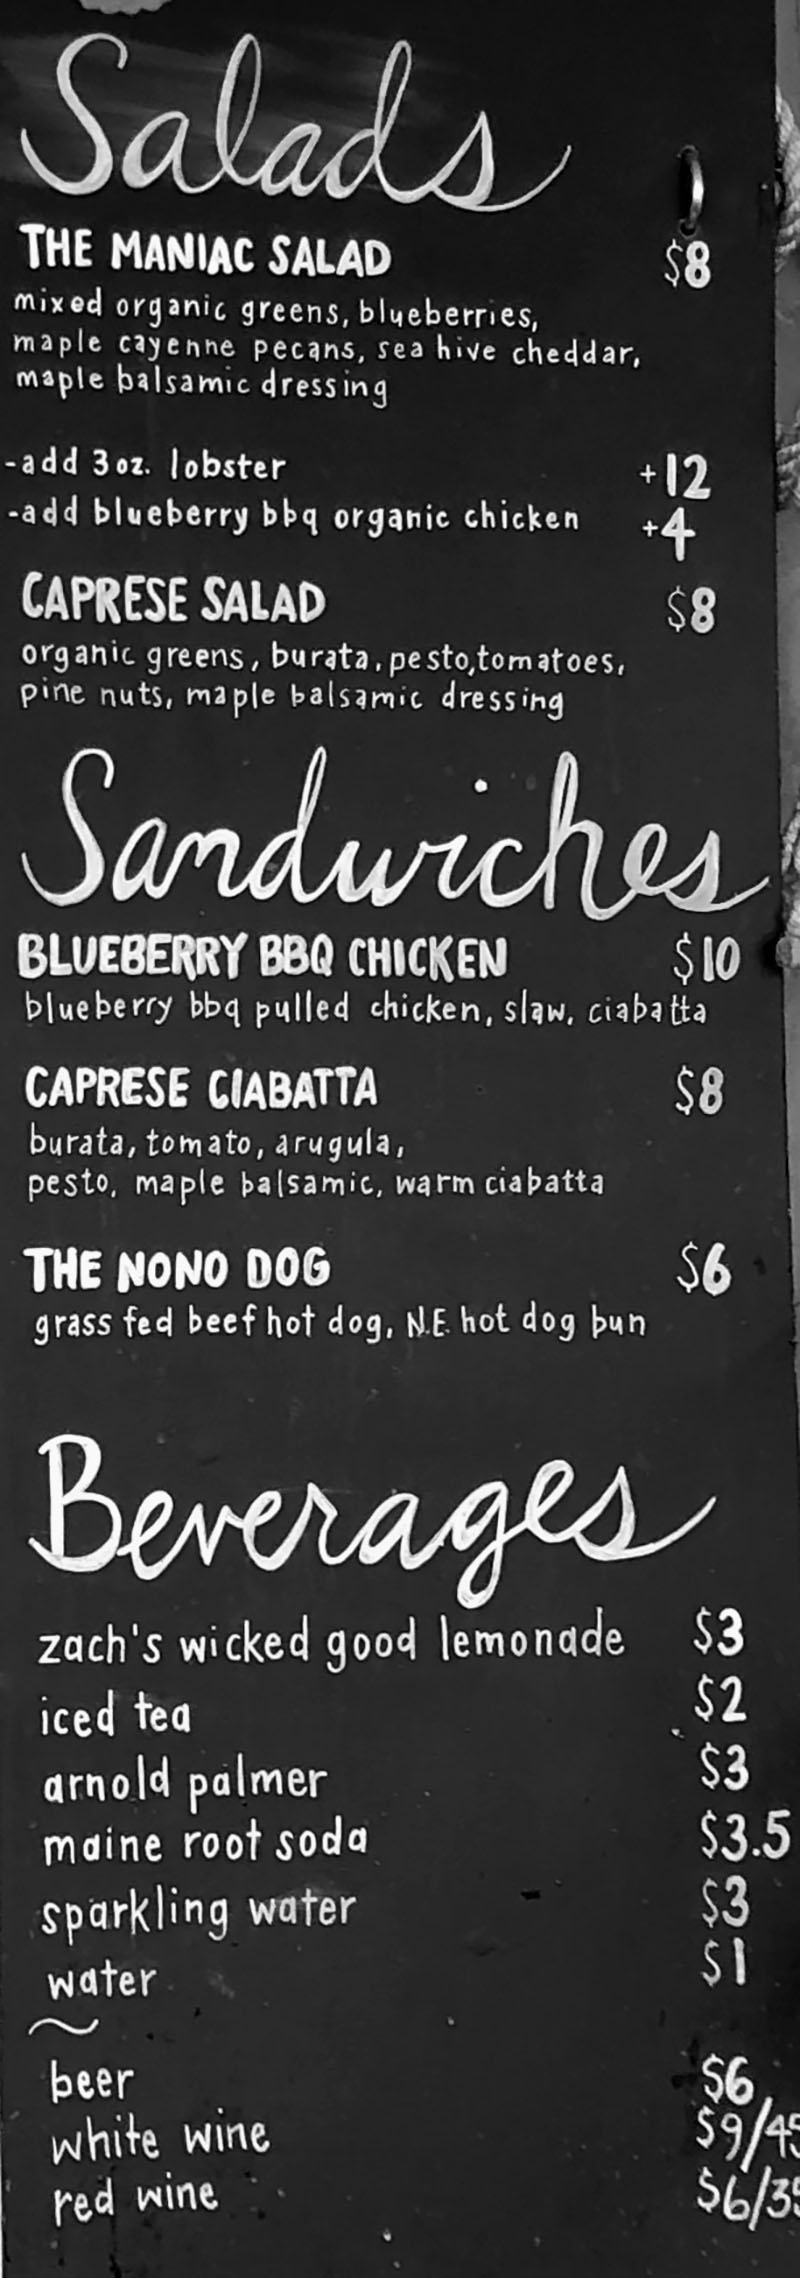 Freshies Park City menu - salads, sandwiches, beverages